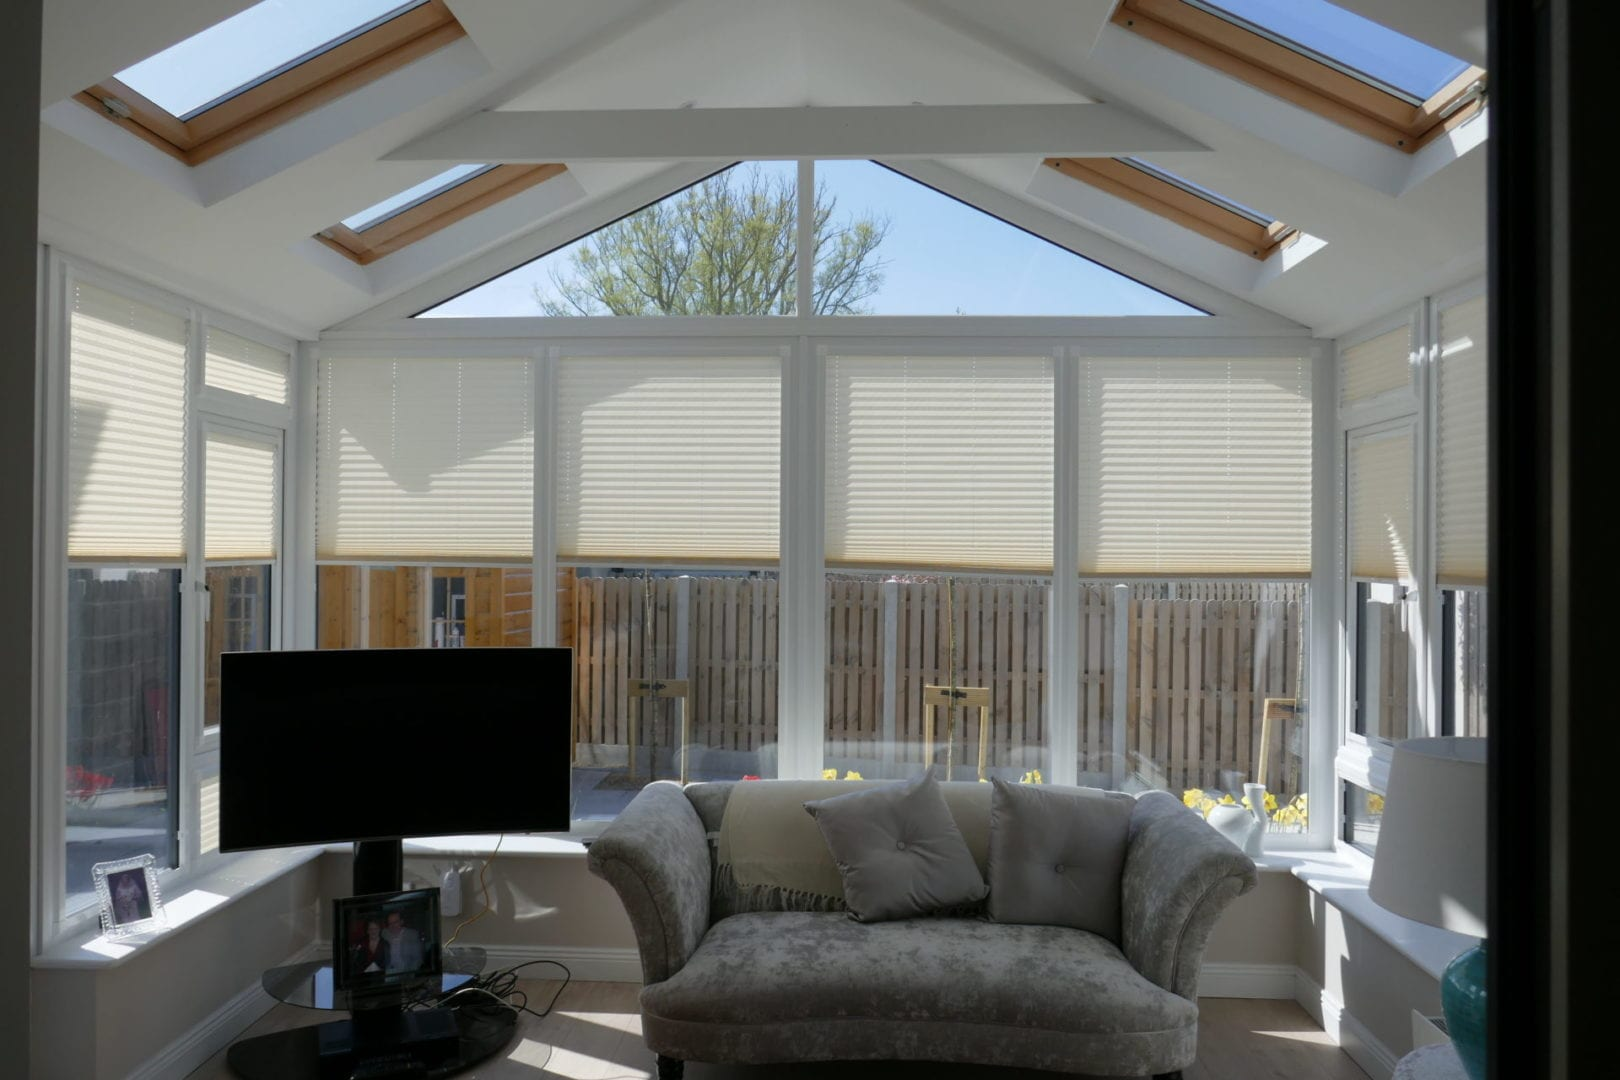 Gable Front Sunroom Without Pillars Internal